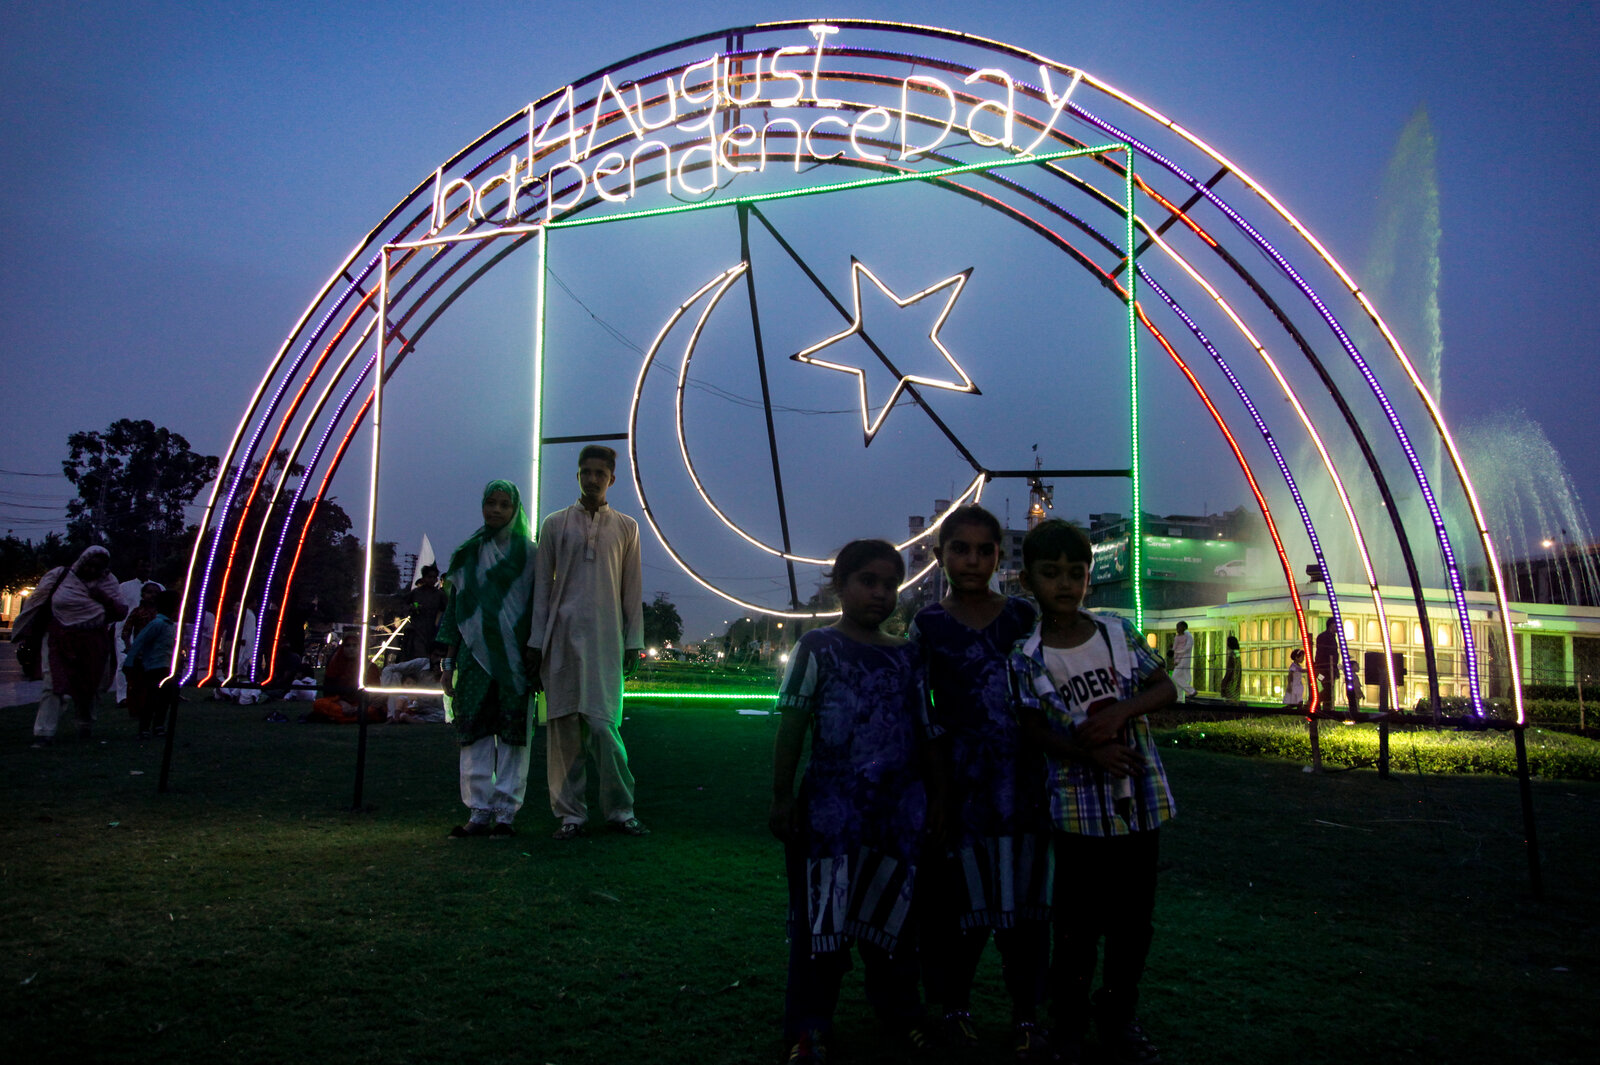 Home to have angered locals is a 30 000 square foot creation of hadid - The Country Created In 1947 As A Homeland For South Asia S Muslims Celebrated 70 Years Of Independence On Aug 14